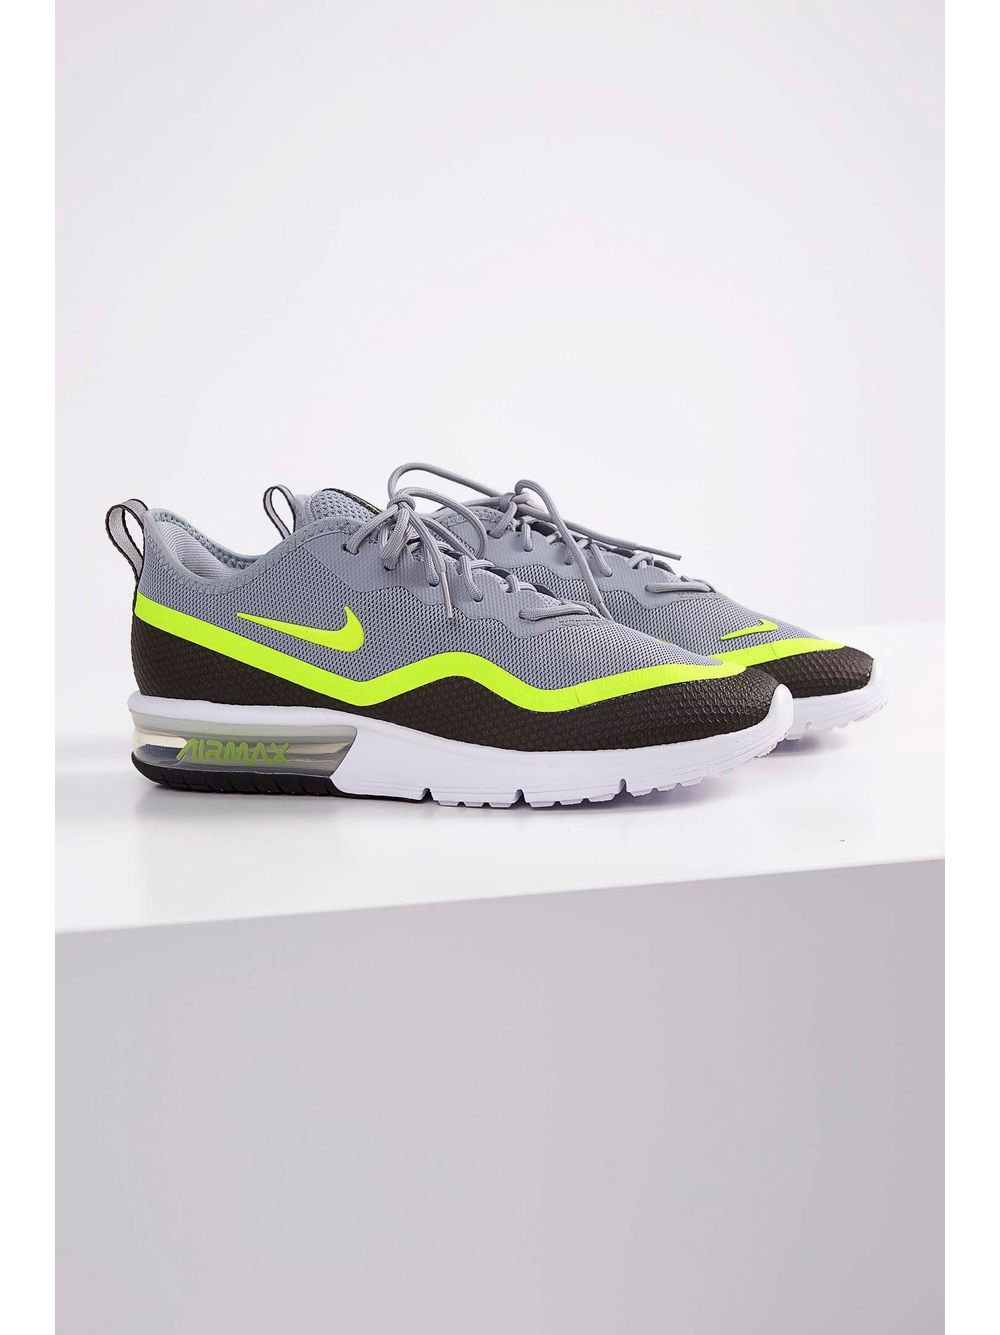 6e50623a04 Tênis Nike Air Max Sequent 4.5 Cinza - pittol